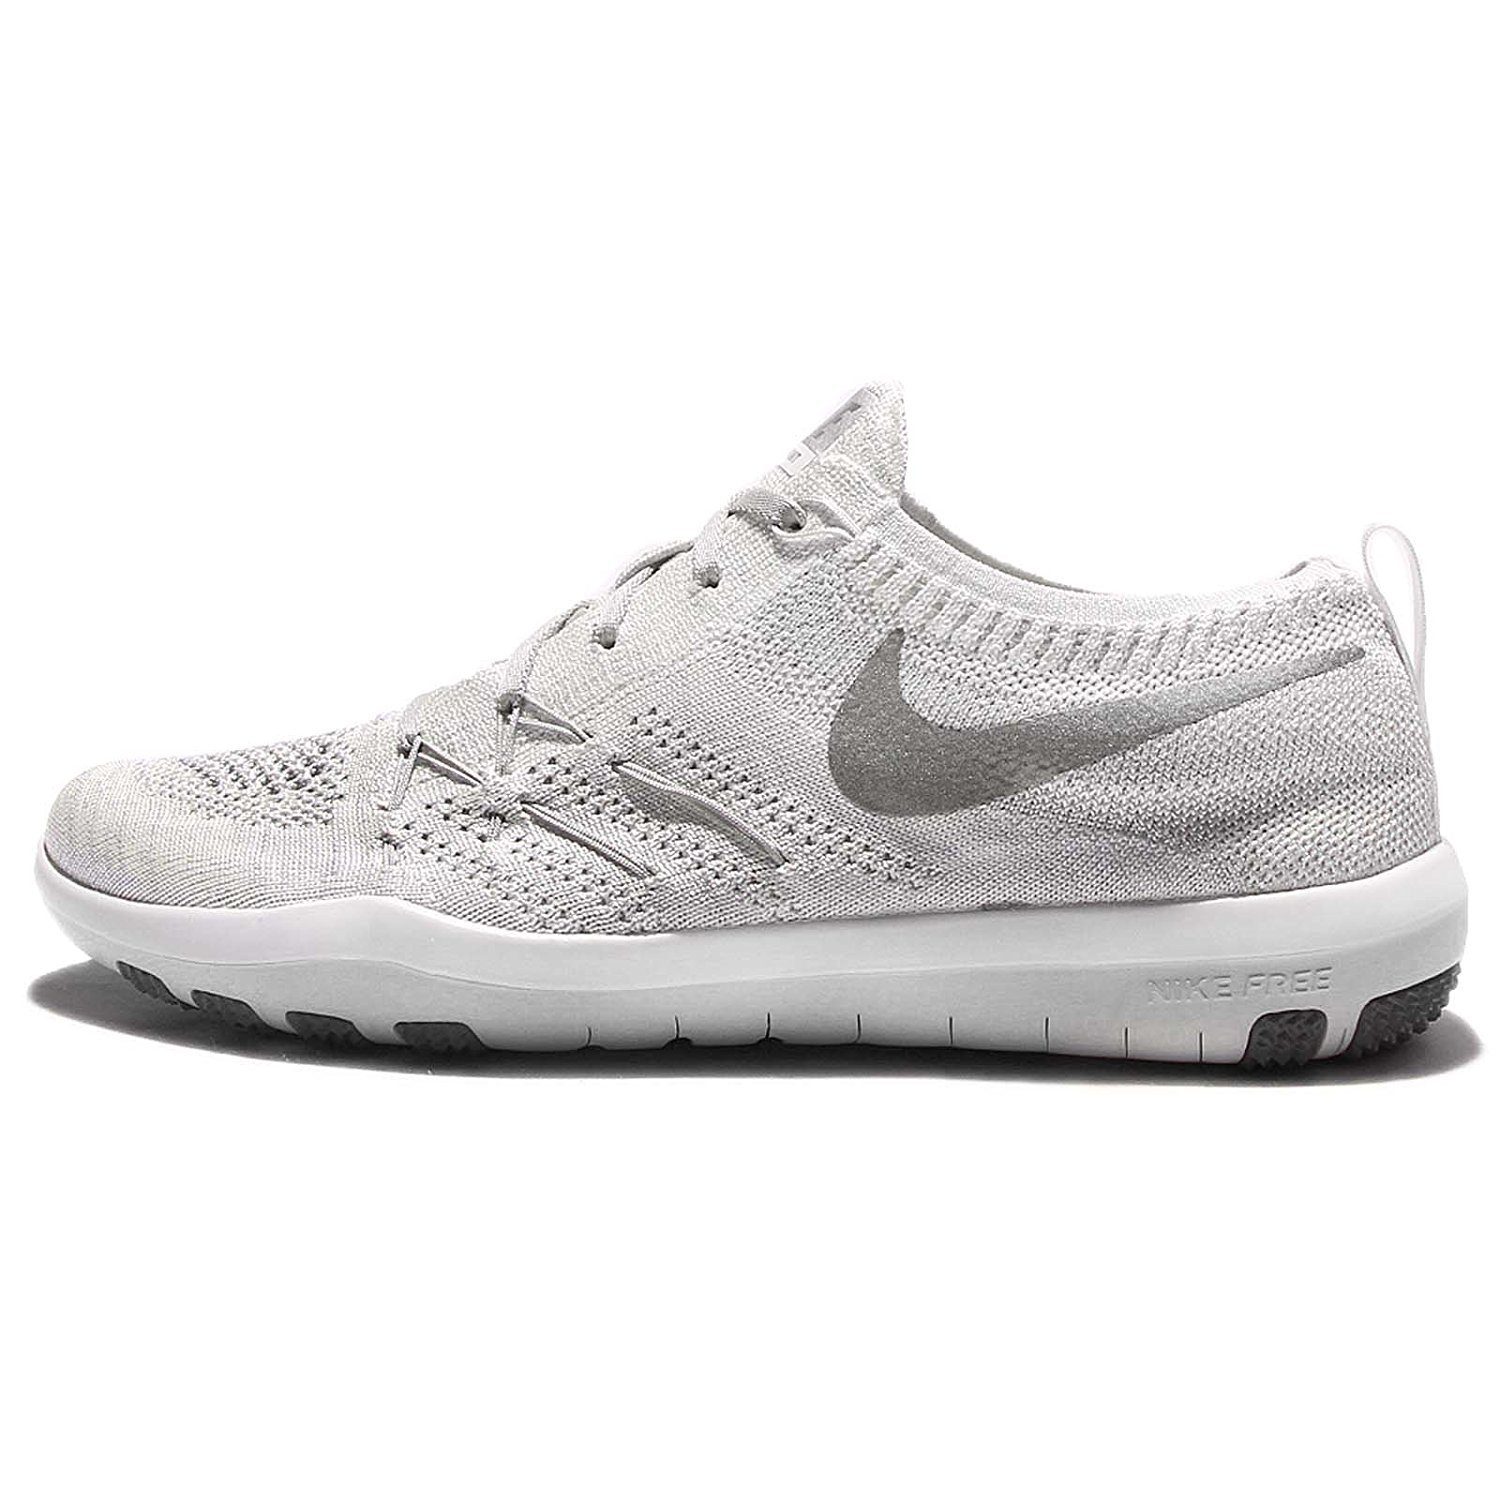 best website 27bcd 59567 Details about Nike Women's Free TR Focus Flyknit Running Shoe